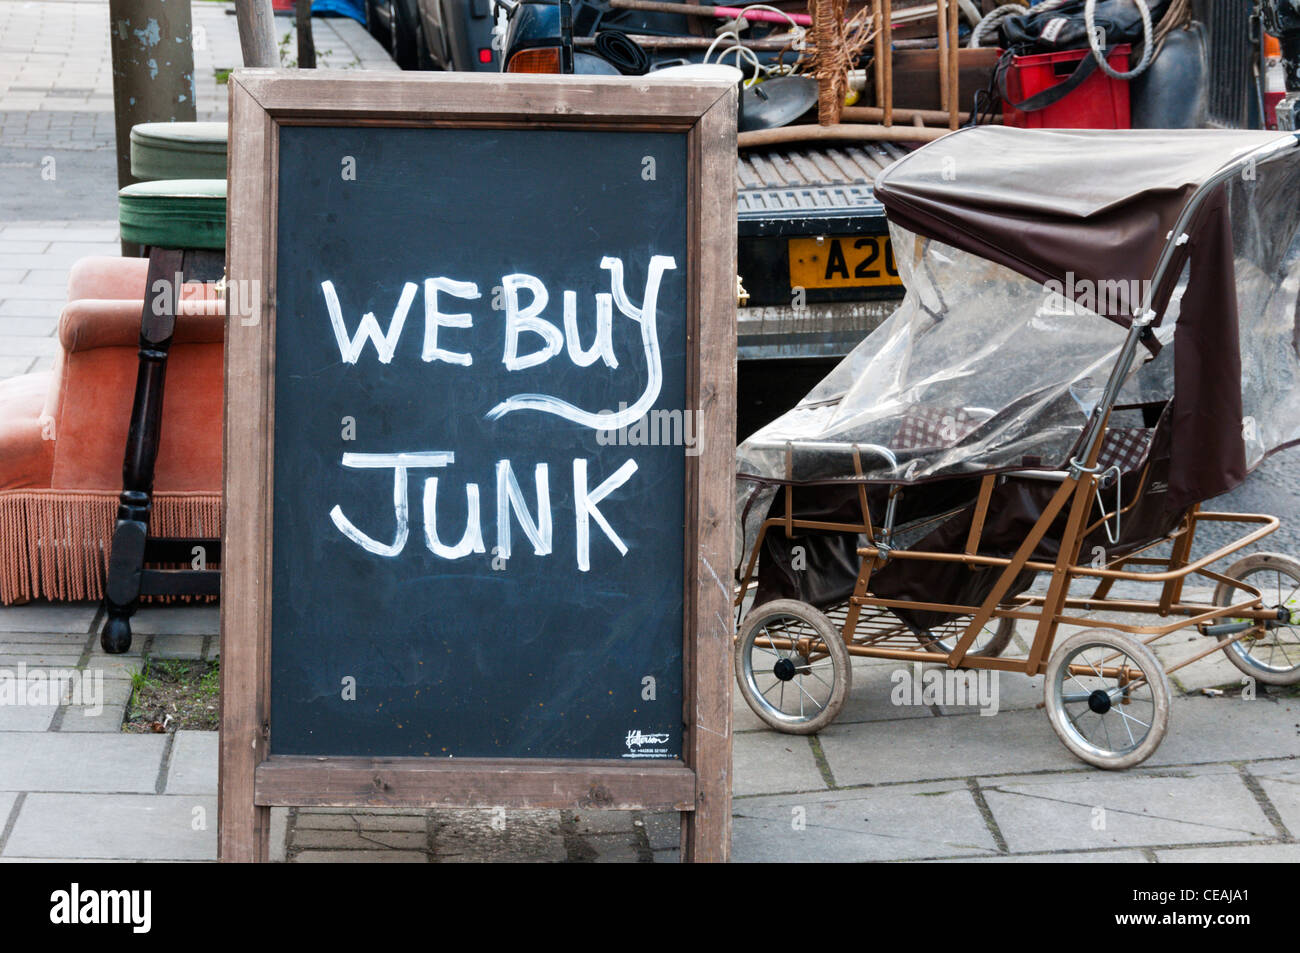 We Buy Junk sign on the pavement outside a junk shop in South London ...